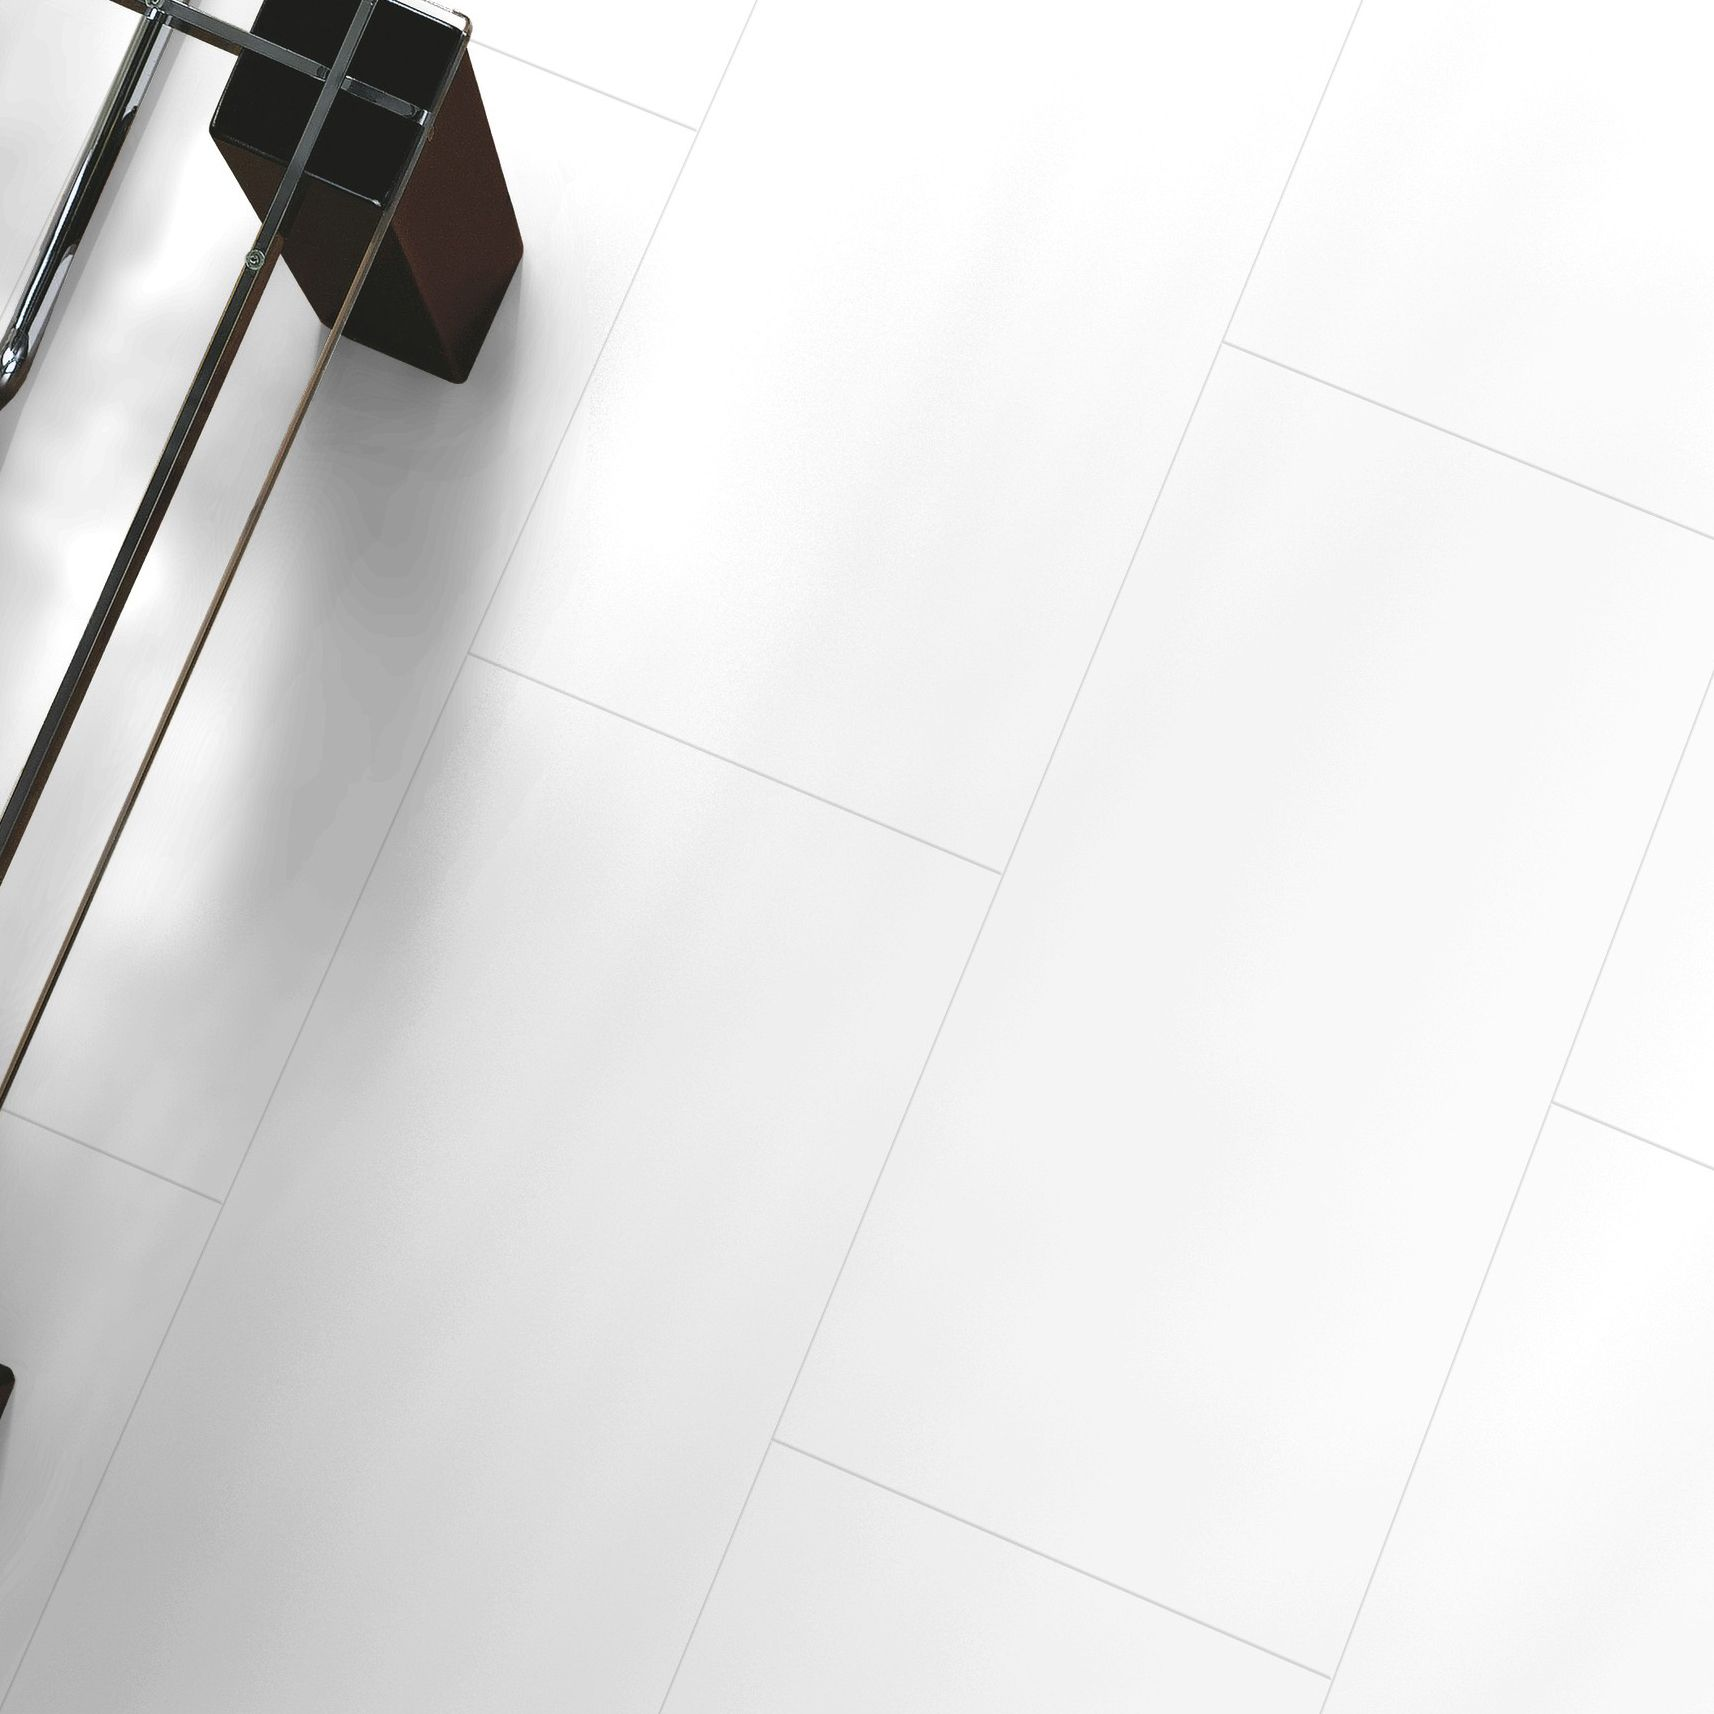 White Bathroom Laminate Flooring b&q bathroom laminate flooring – meze blog